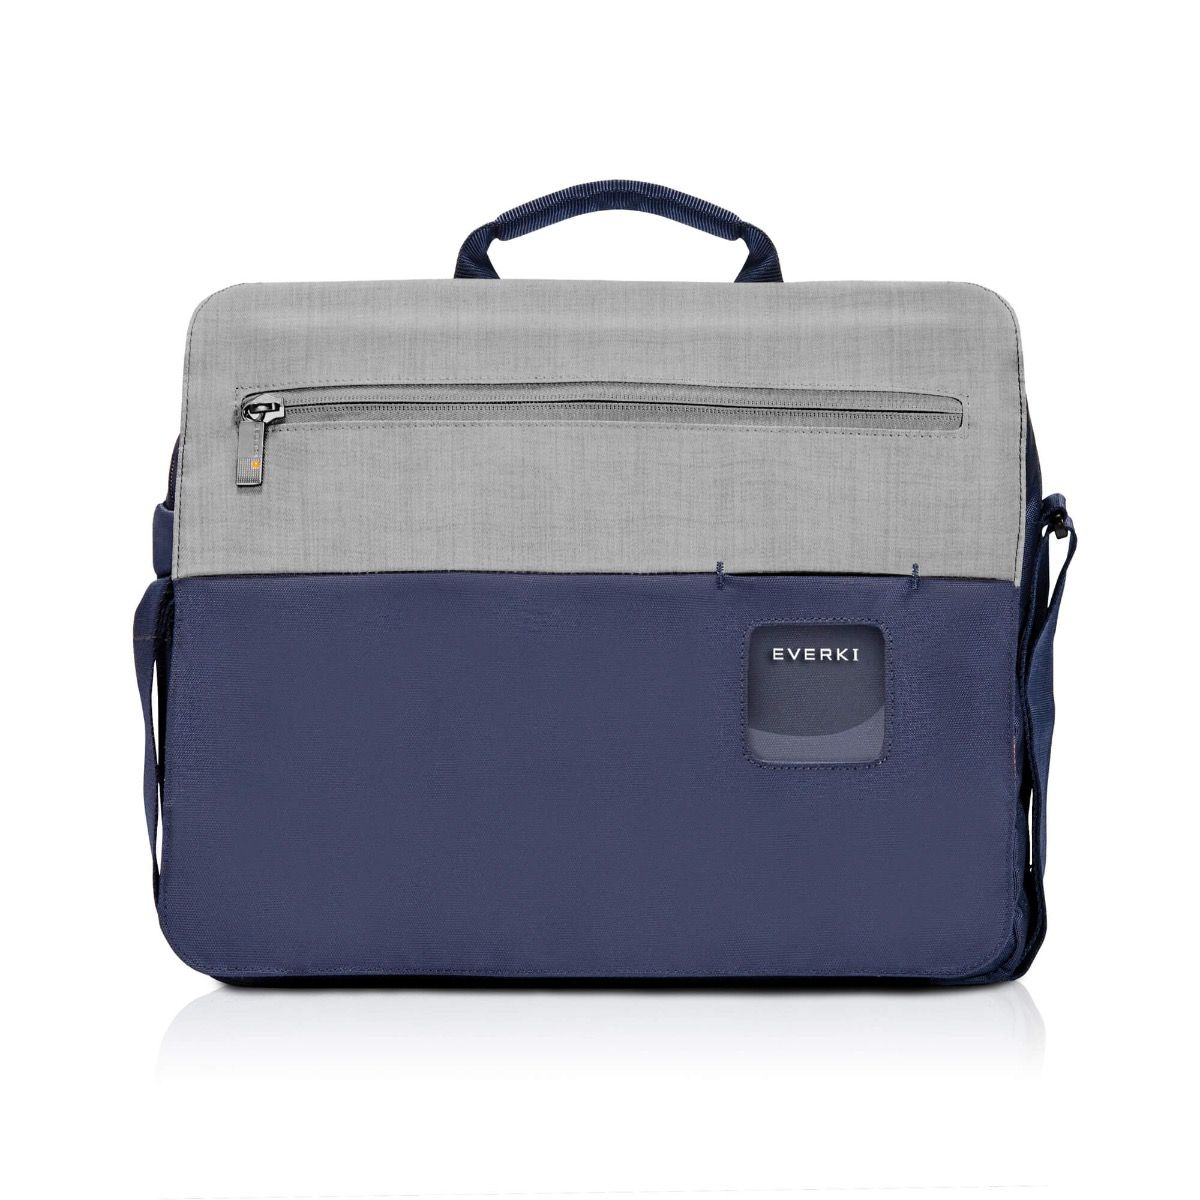 EVERKI ContemPRO 14 Navy Laptop Shoulder Bag